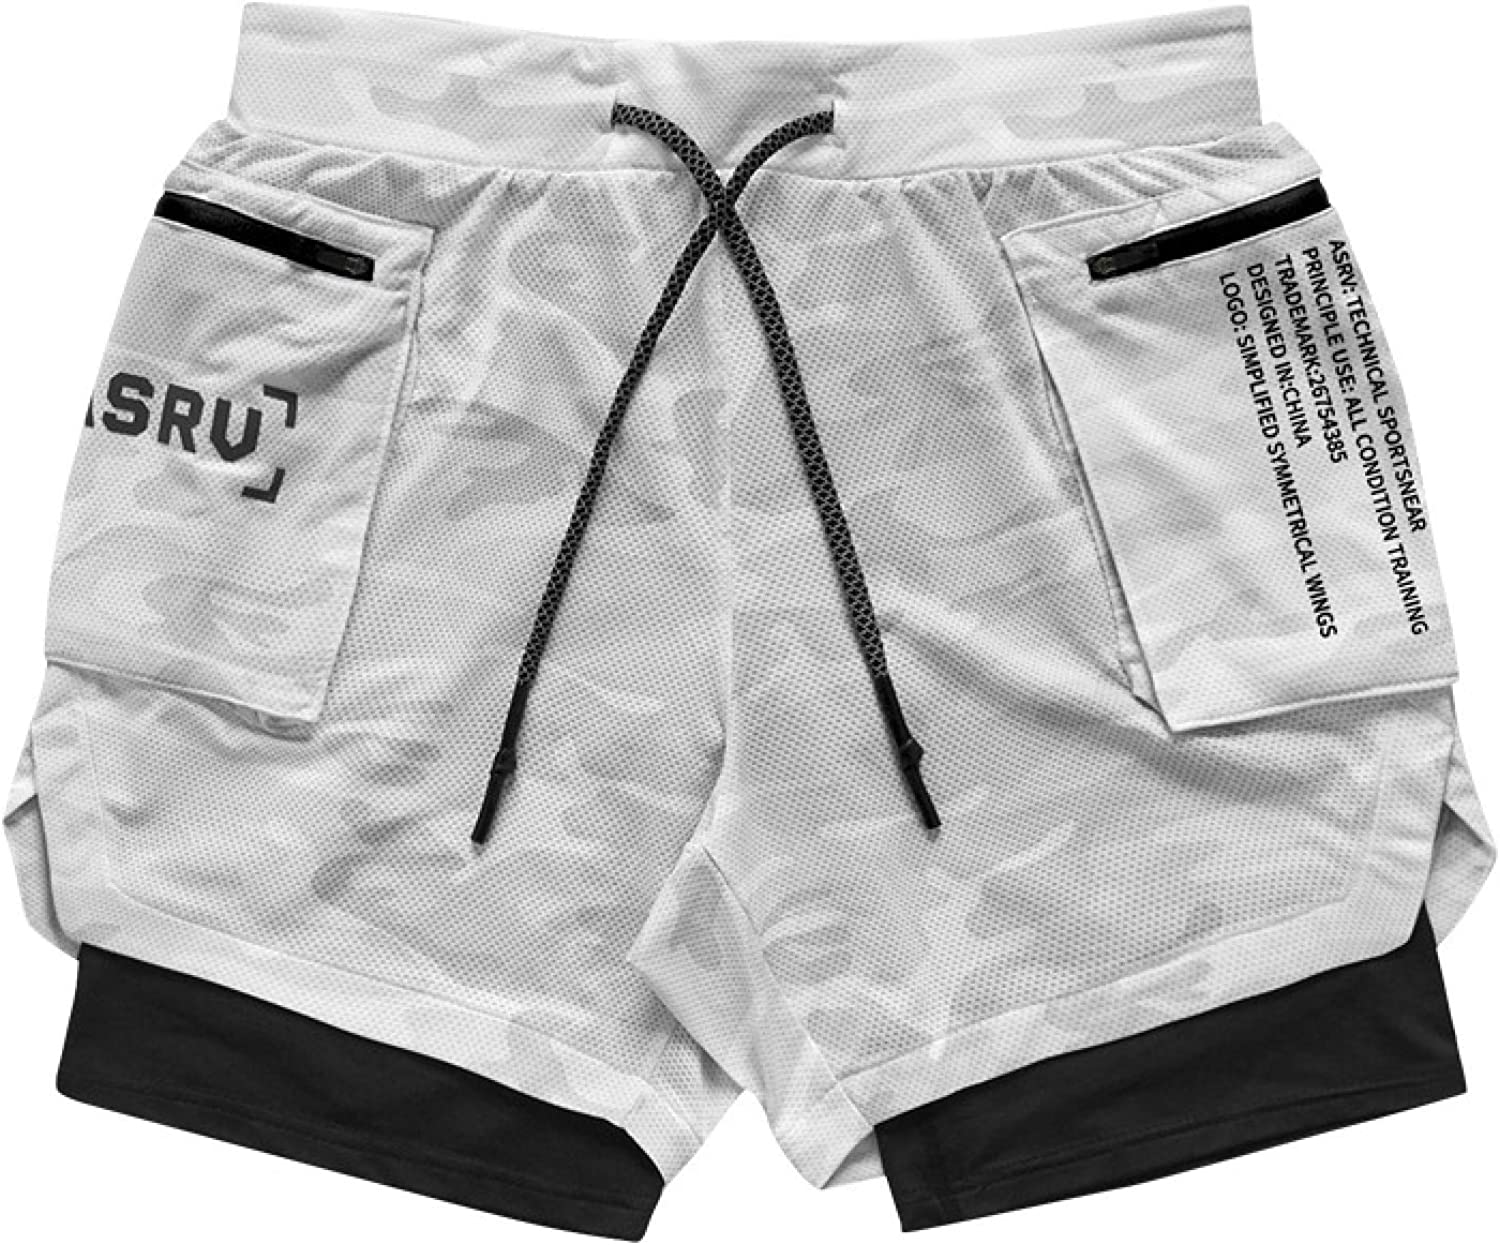 Jubaton Summer Shorts Men's Loose Large Size Double-Layer Straight Quick-Drying